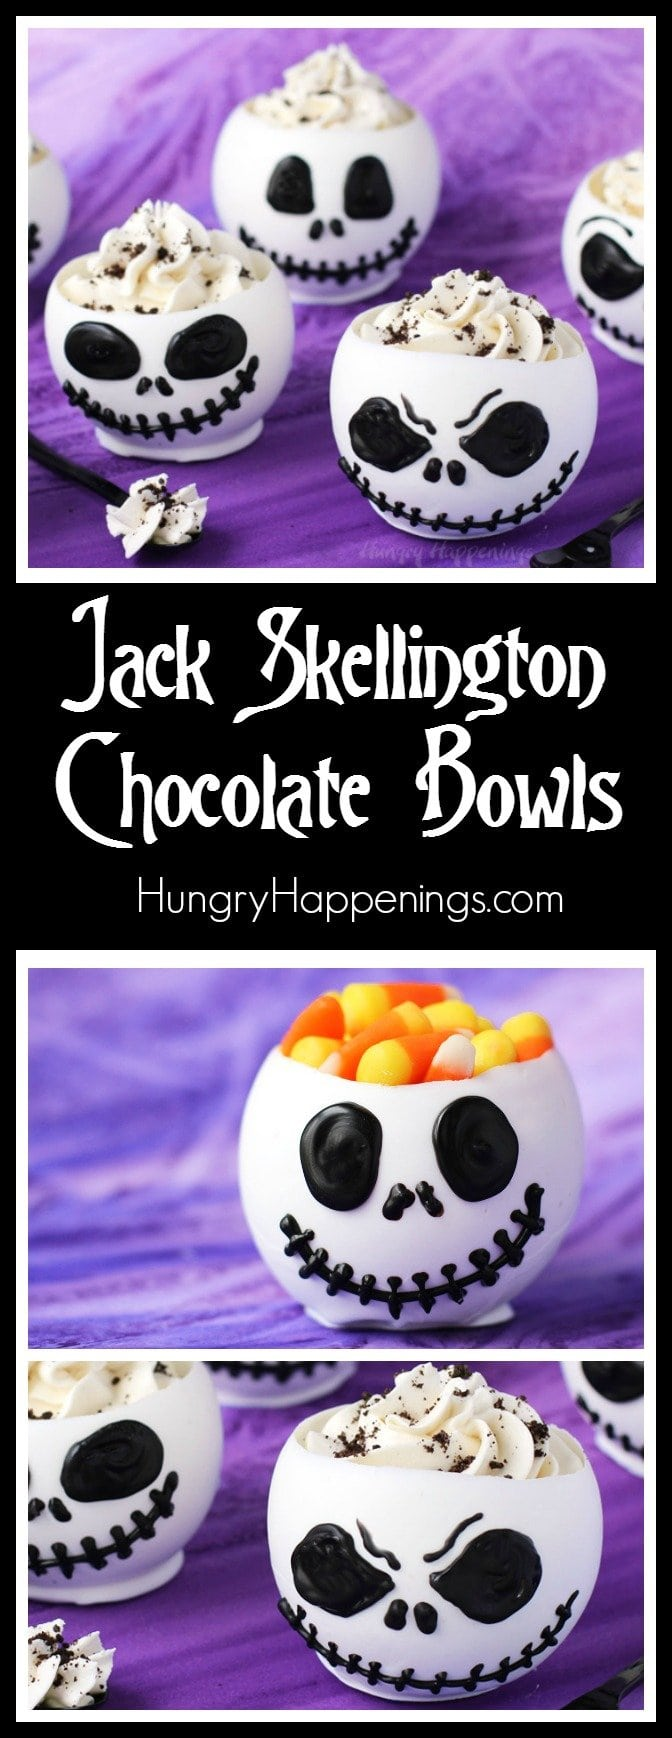 These Jack Skellington Chocolate Bowls filled with Cookies 'n Cream Cheesecake Mousse or candy are to die for and they are perfect desserts to serve at a Halloween celebration or a Nightmare Before Christmas party.